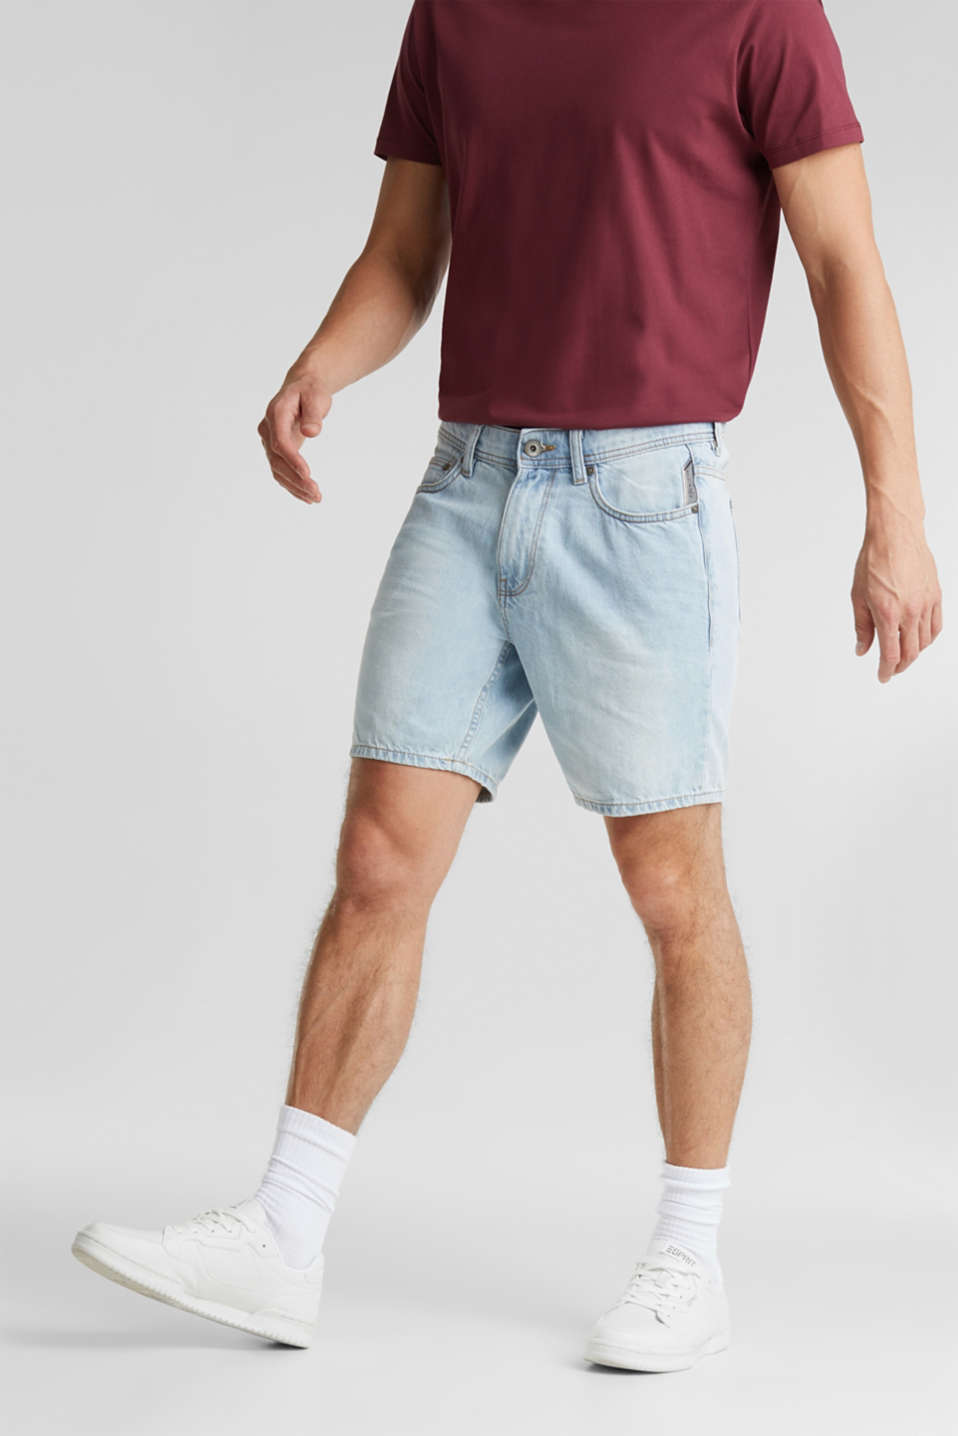 edc - Denim-Short aus 100% Baumwolle